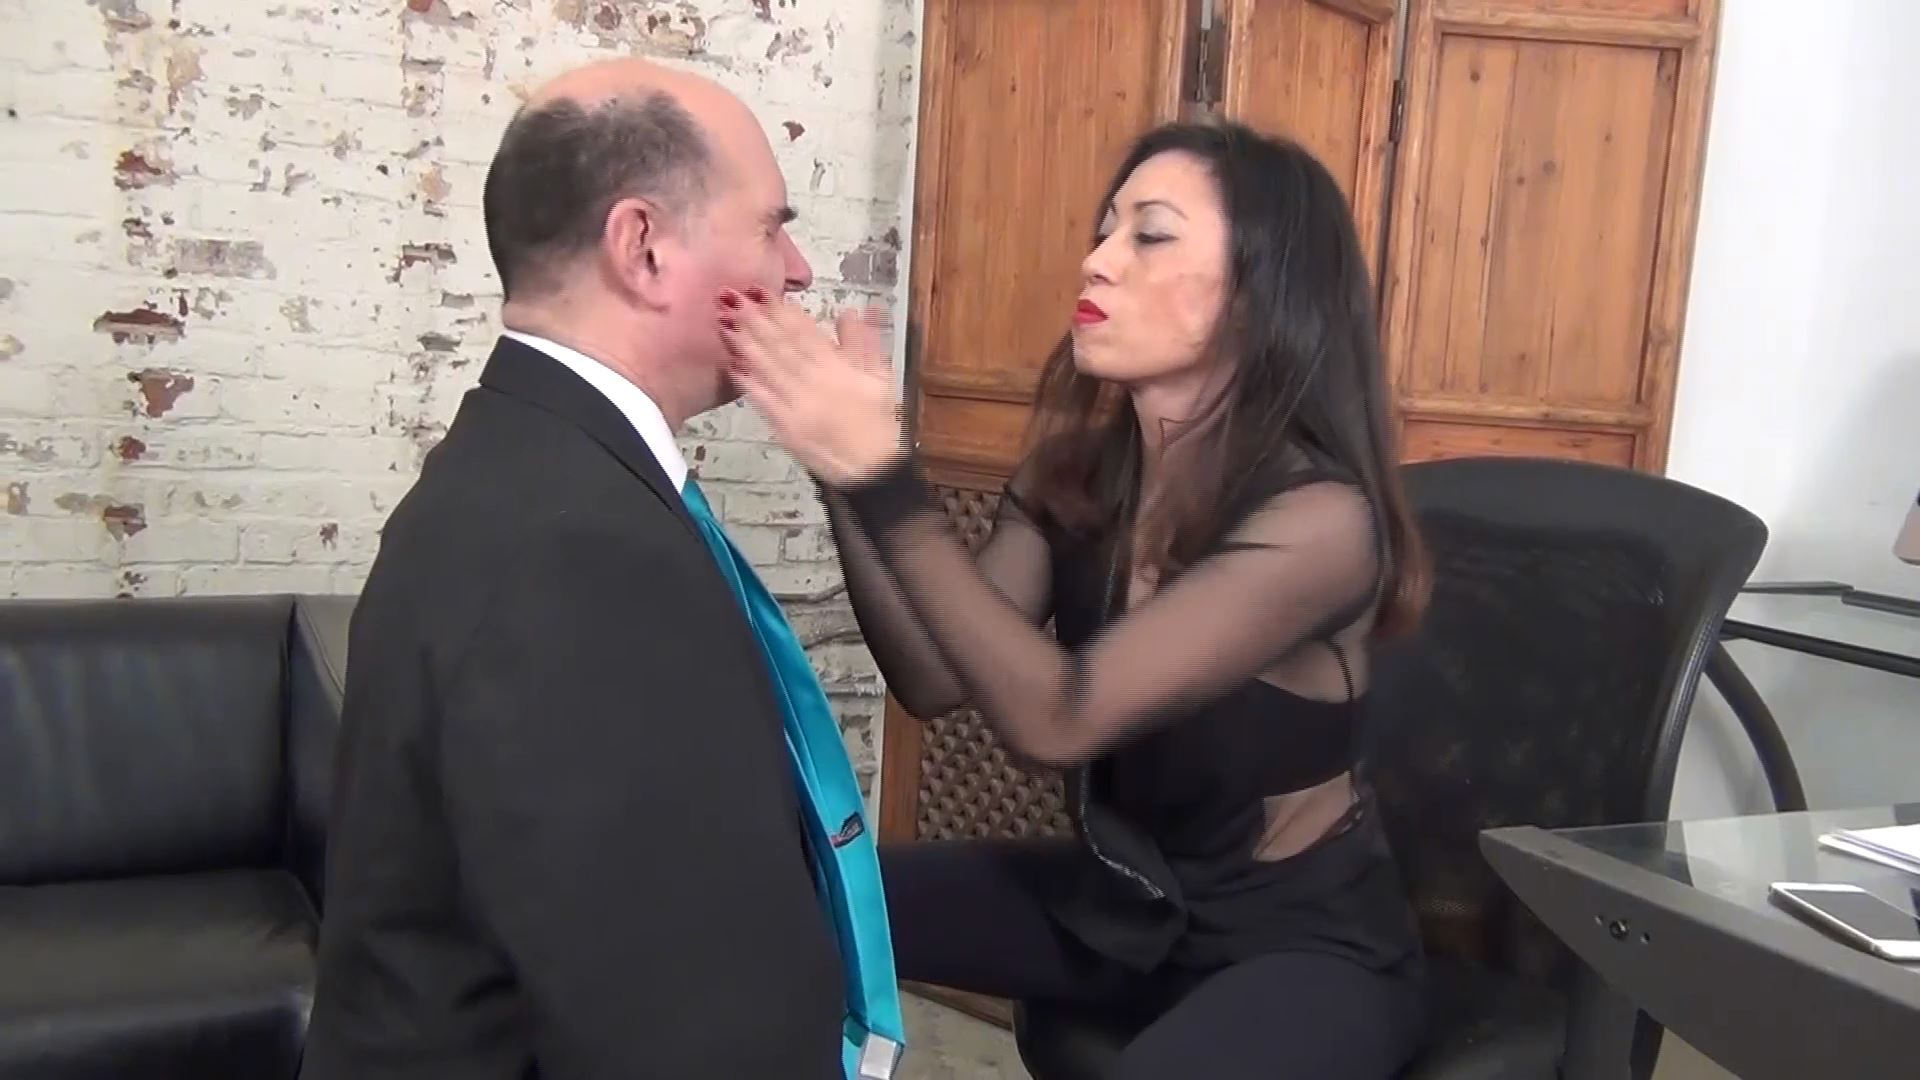 Goddess Pepper In Scene: A HUMILIATION FACE SLAPPING FOR LEWIS THE LOSER - ASIAN MEAN GIRLS - FULL HD/1080p/MP4